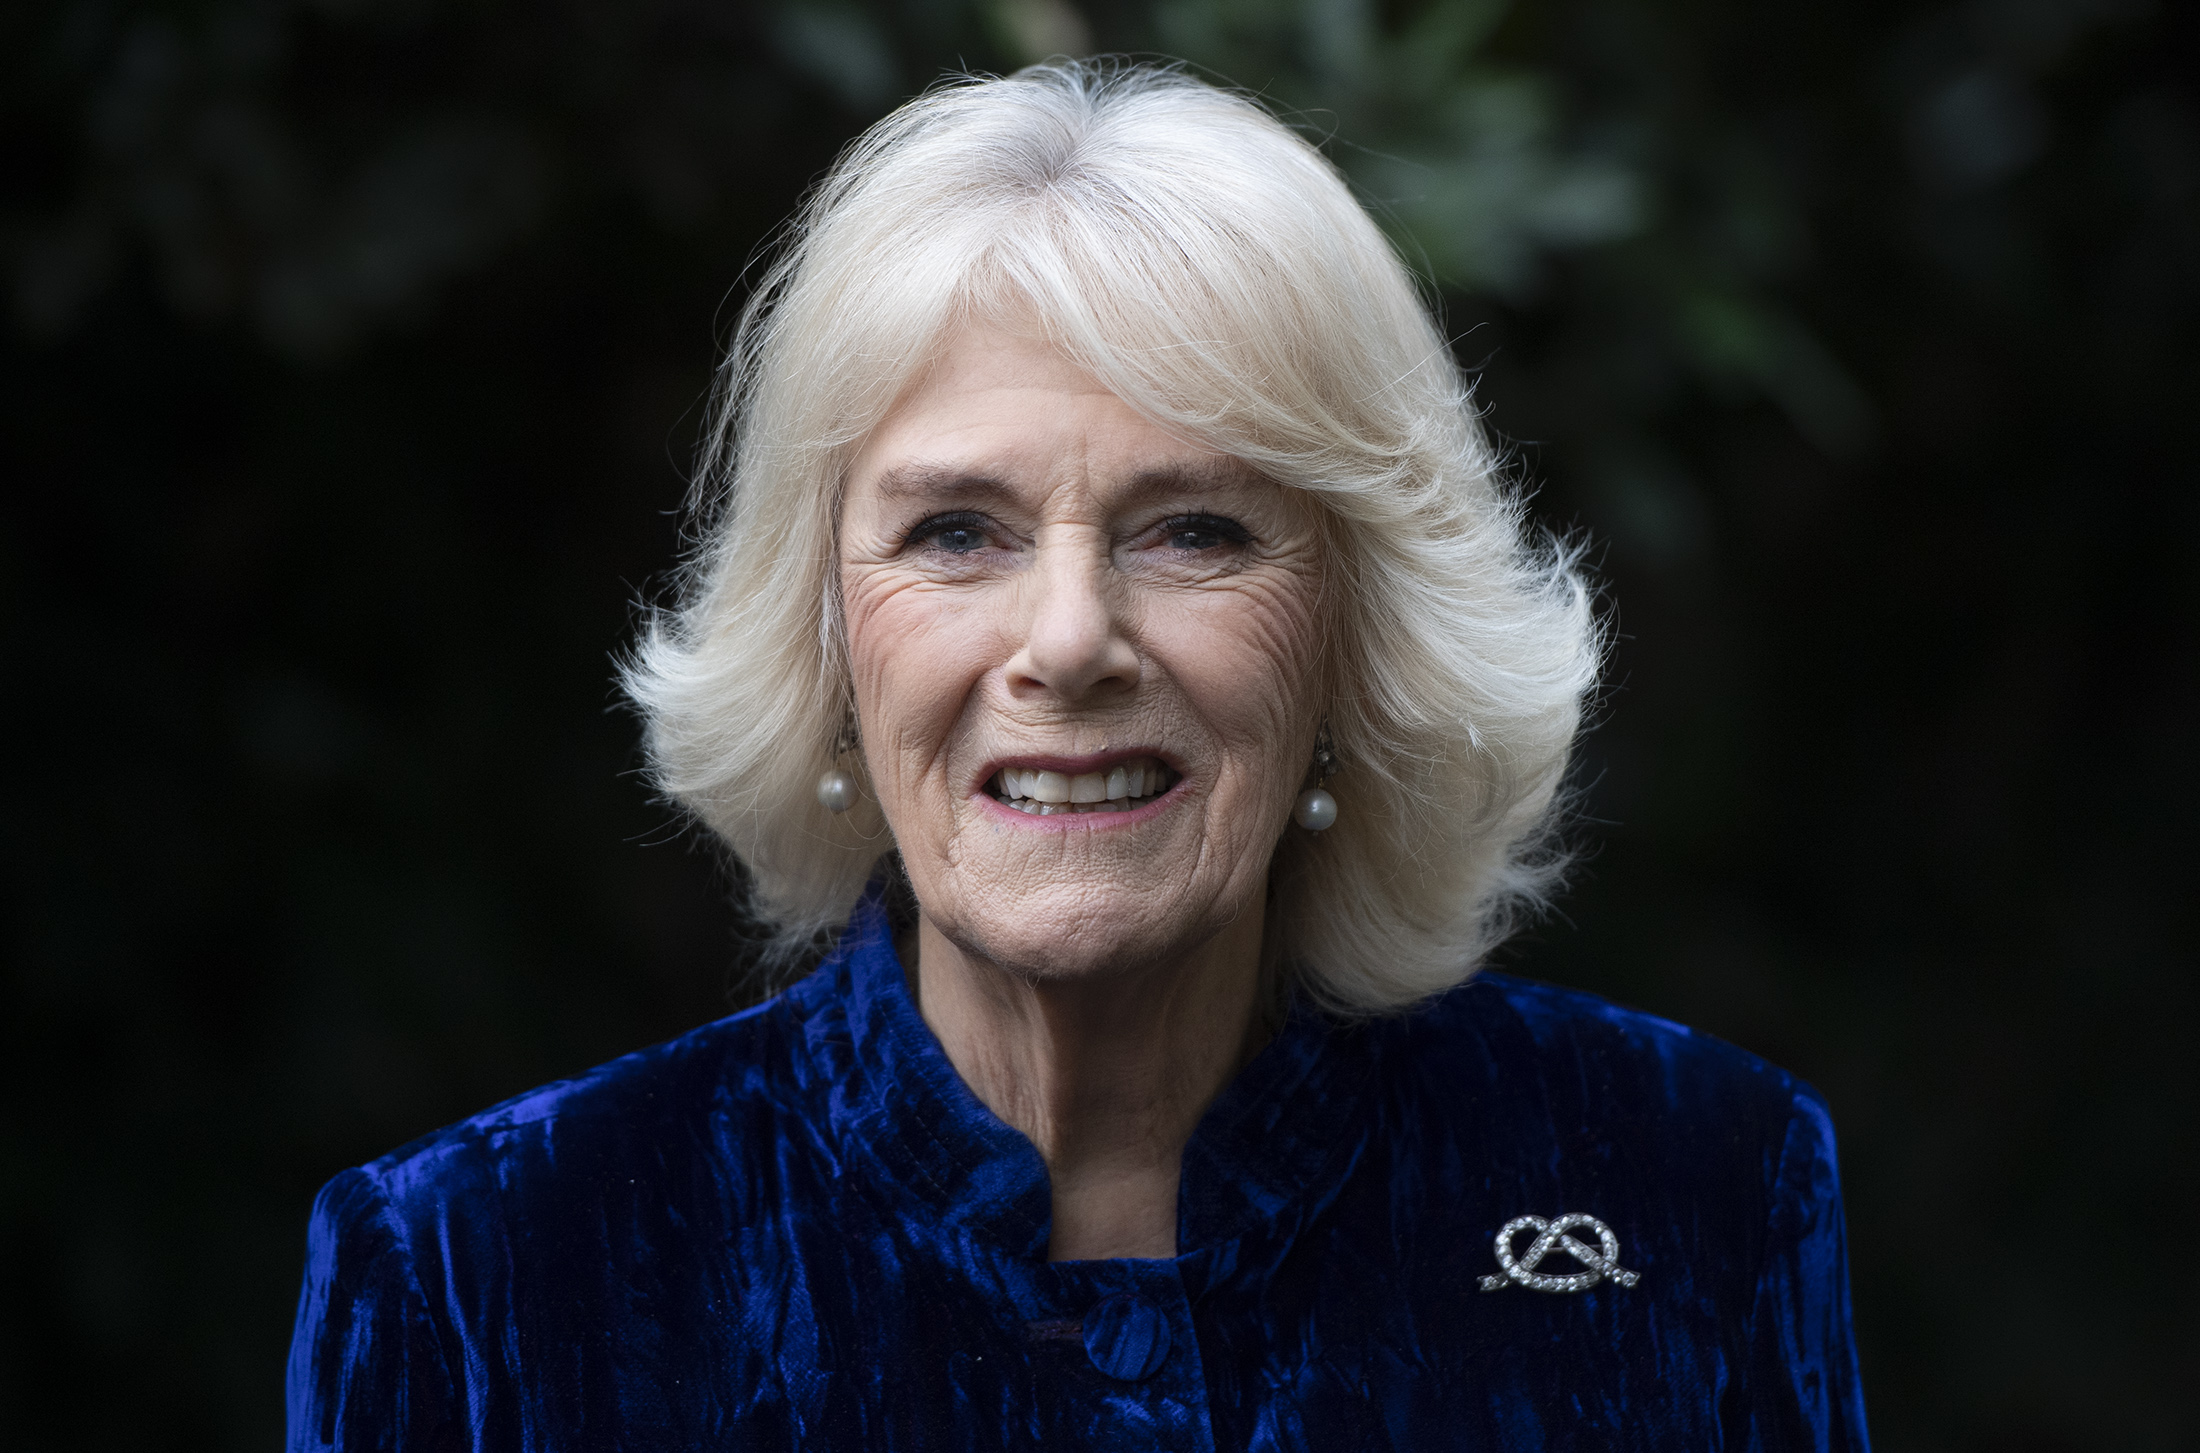 Royal Photographer Says Camilla Parker Bowles Is 'Awesome to Photograph'